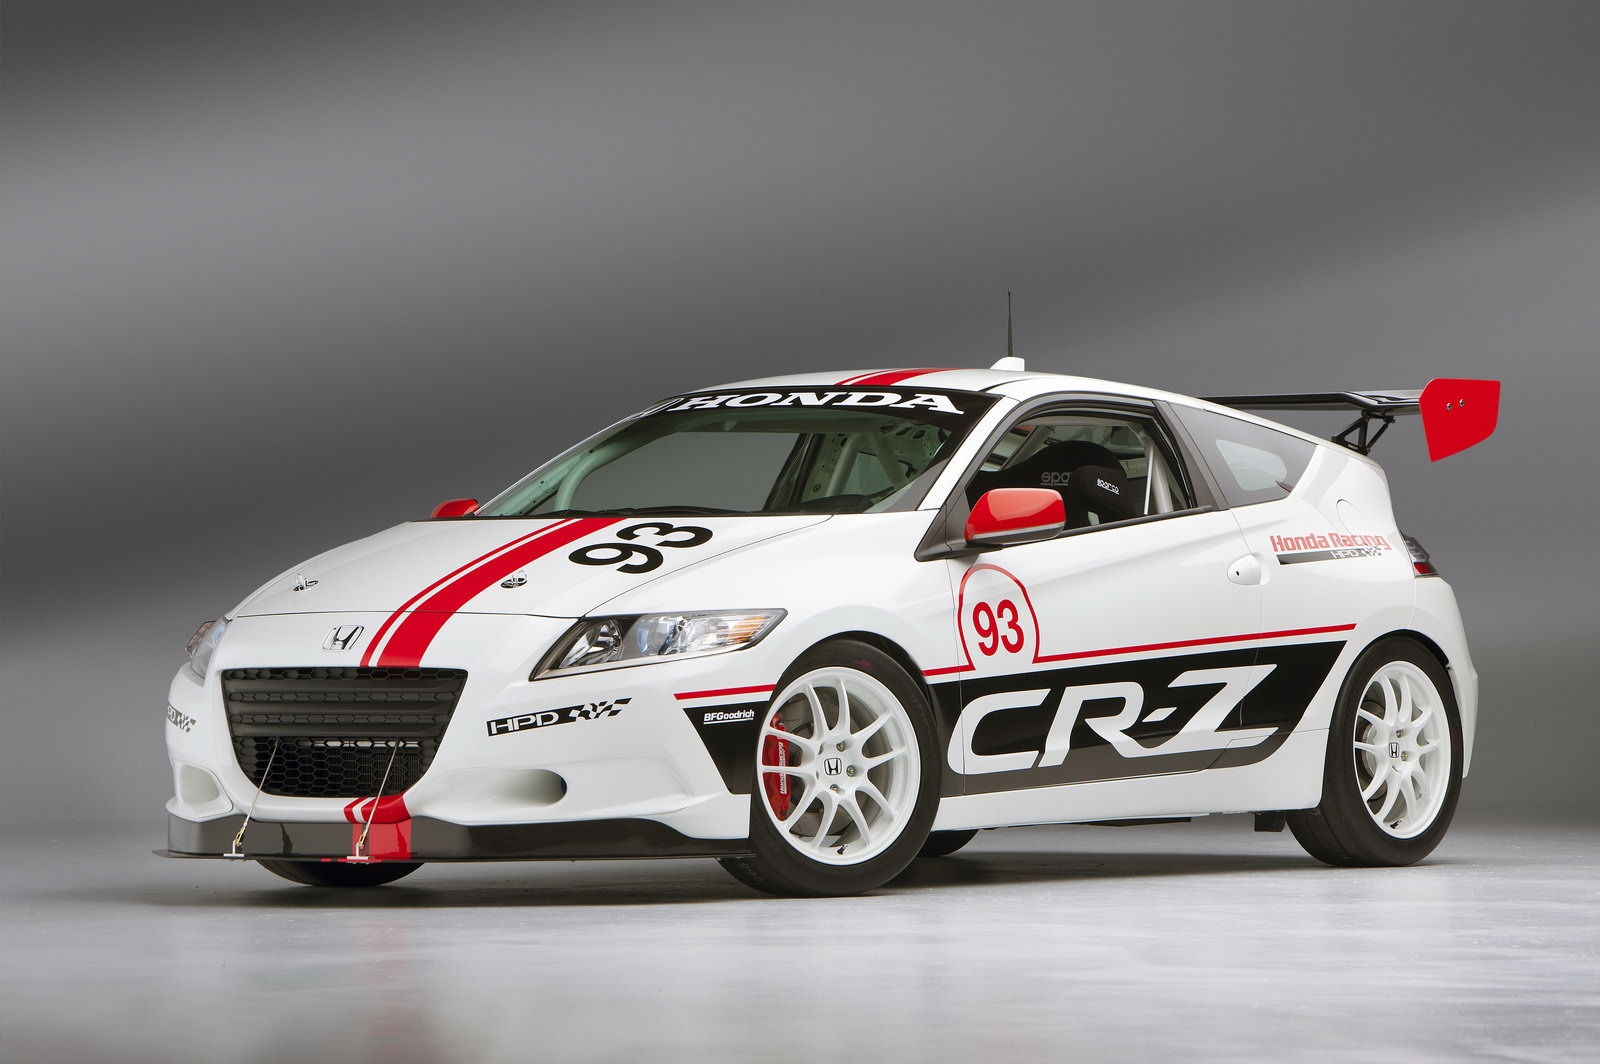 Honda CR Z R 1 Le Mans to witness the demo run of Honda CR Z Hybrid Racer